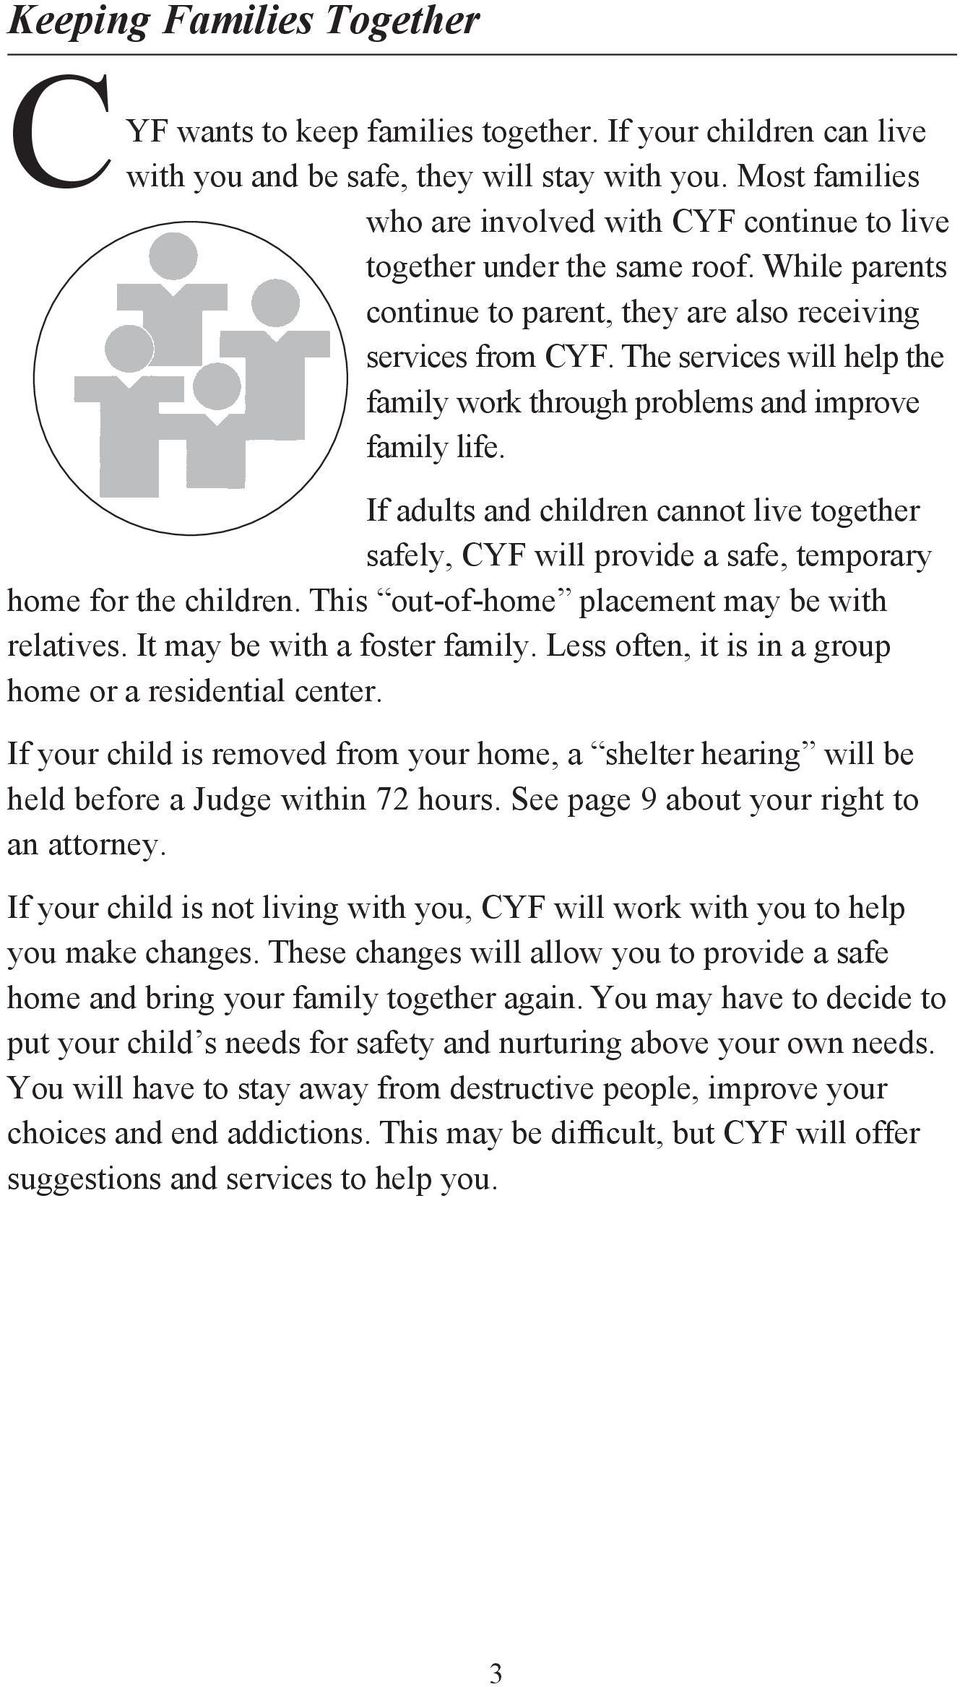 The services will help the family work through problems and improve family life. If adults and children cannot live together safely, CYF will provide a safe, temporary home for the children.